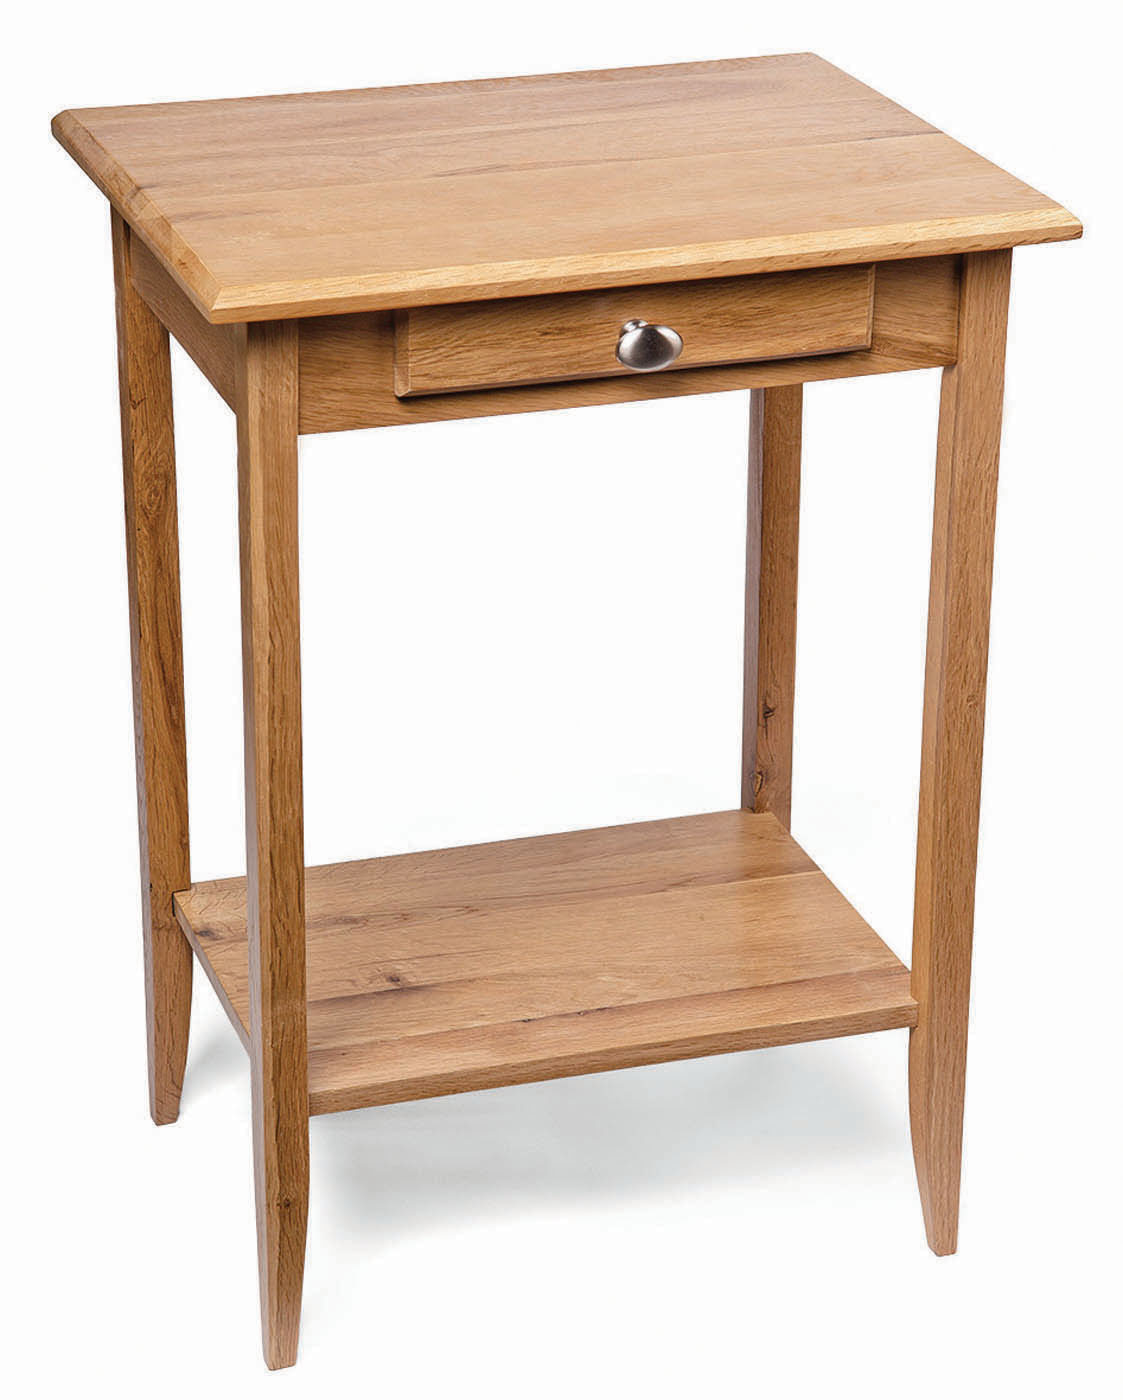 Japanese End Table Wood Accent Stand Modern Lamp Furniture: Solid Wood Telephone/Bedside